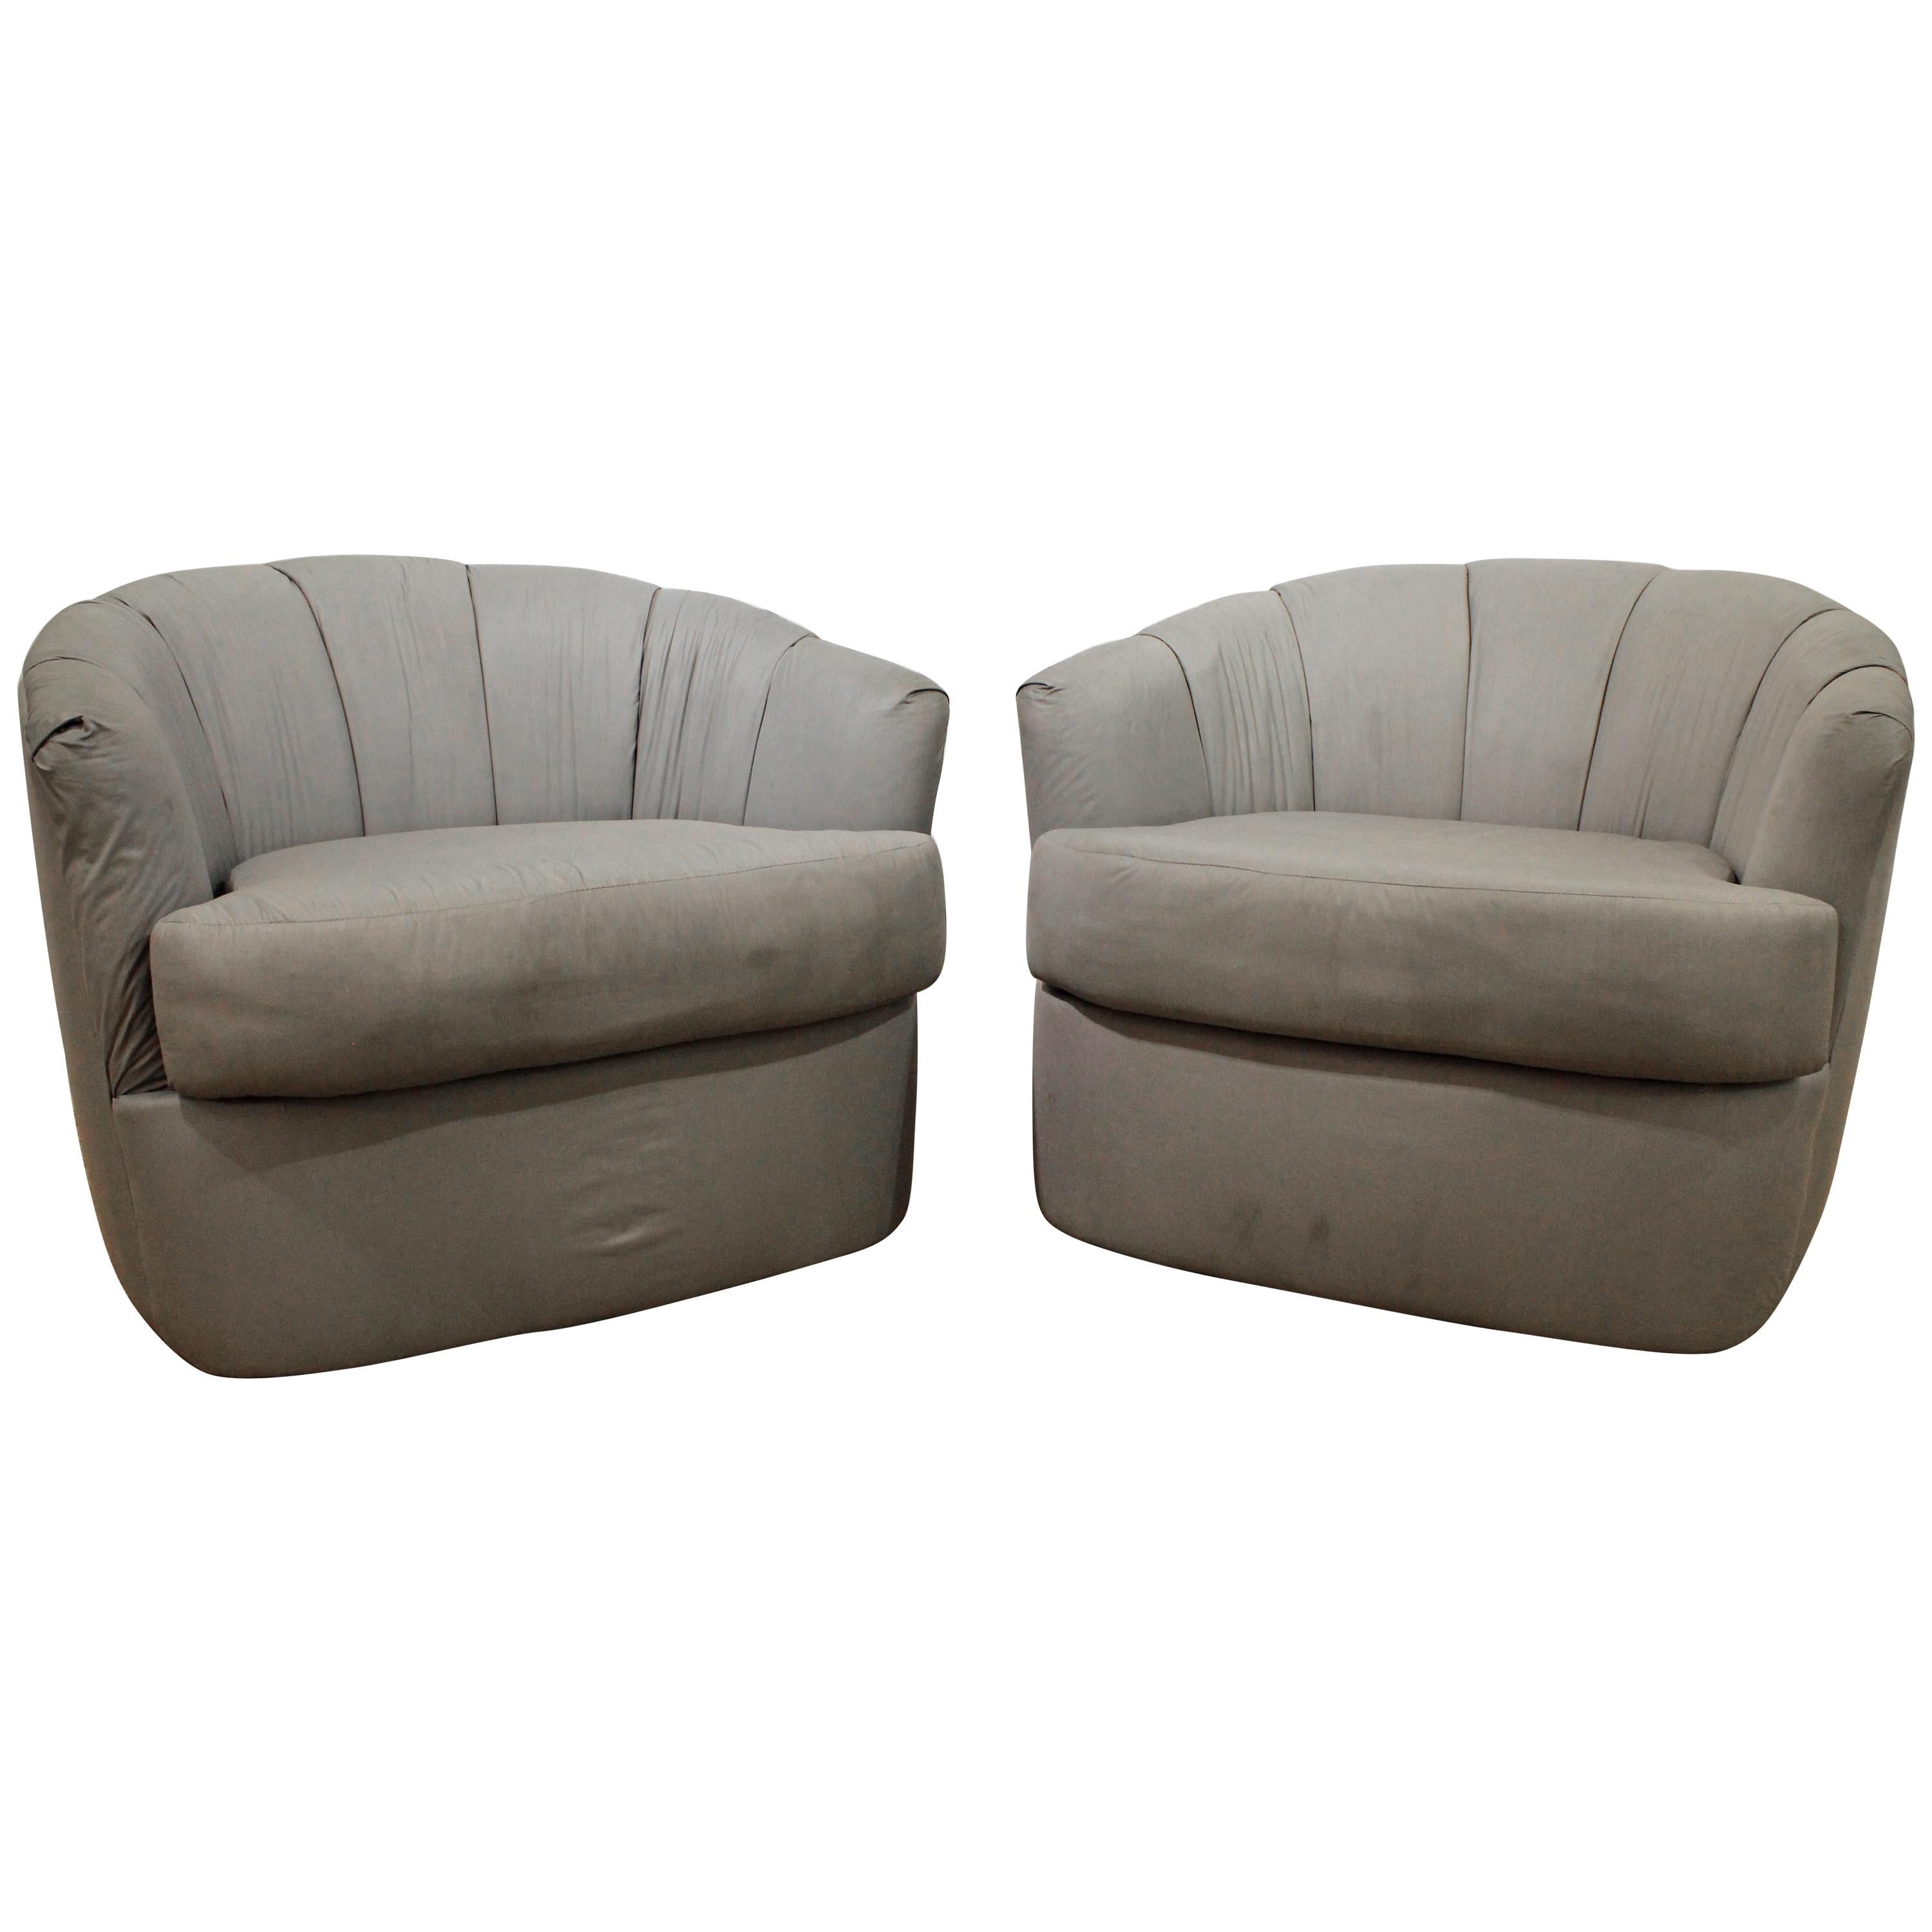 Swivel Tub Chair Pair Of Milo Baughman Swivel Tub Chairs With Brown Laminate And Original Fabric